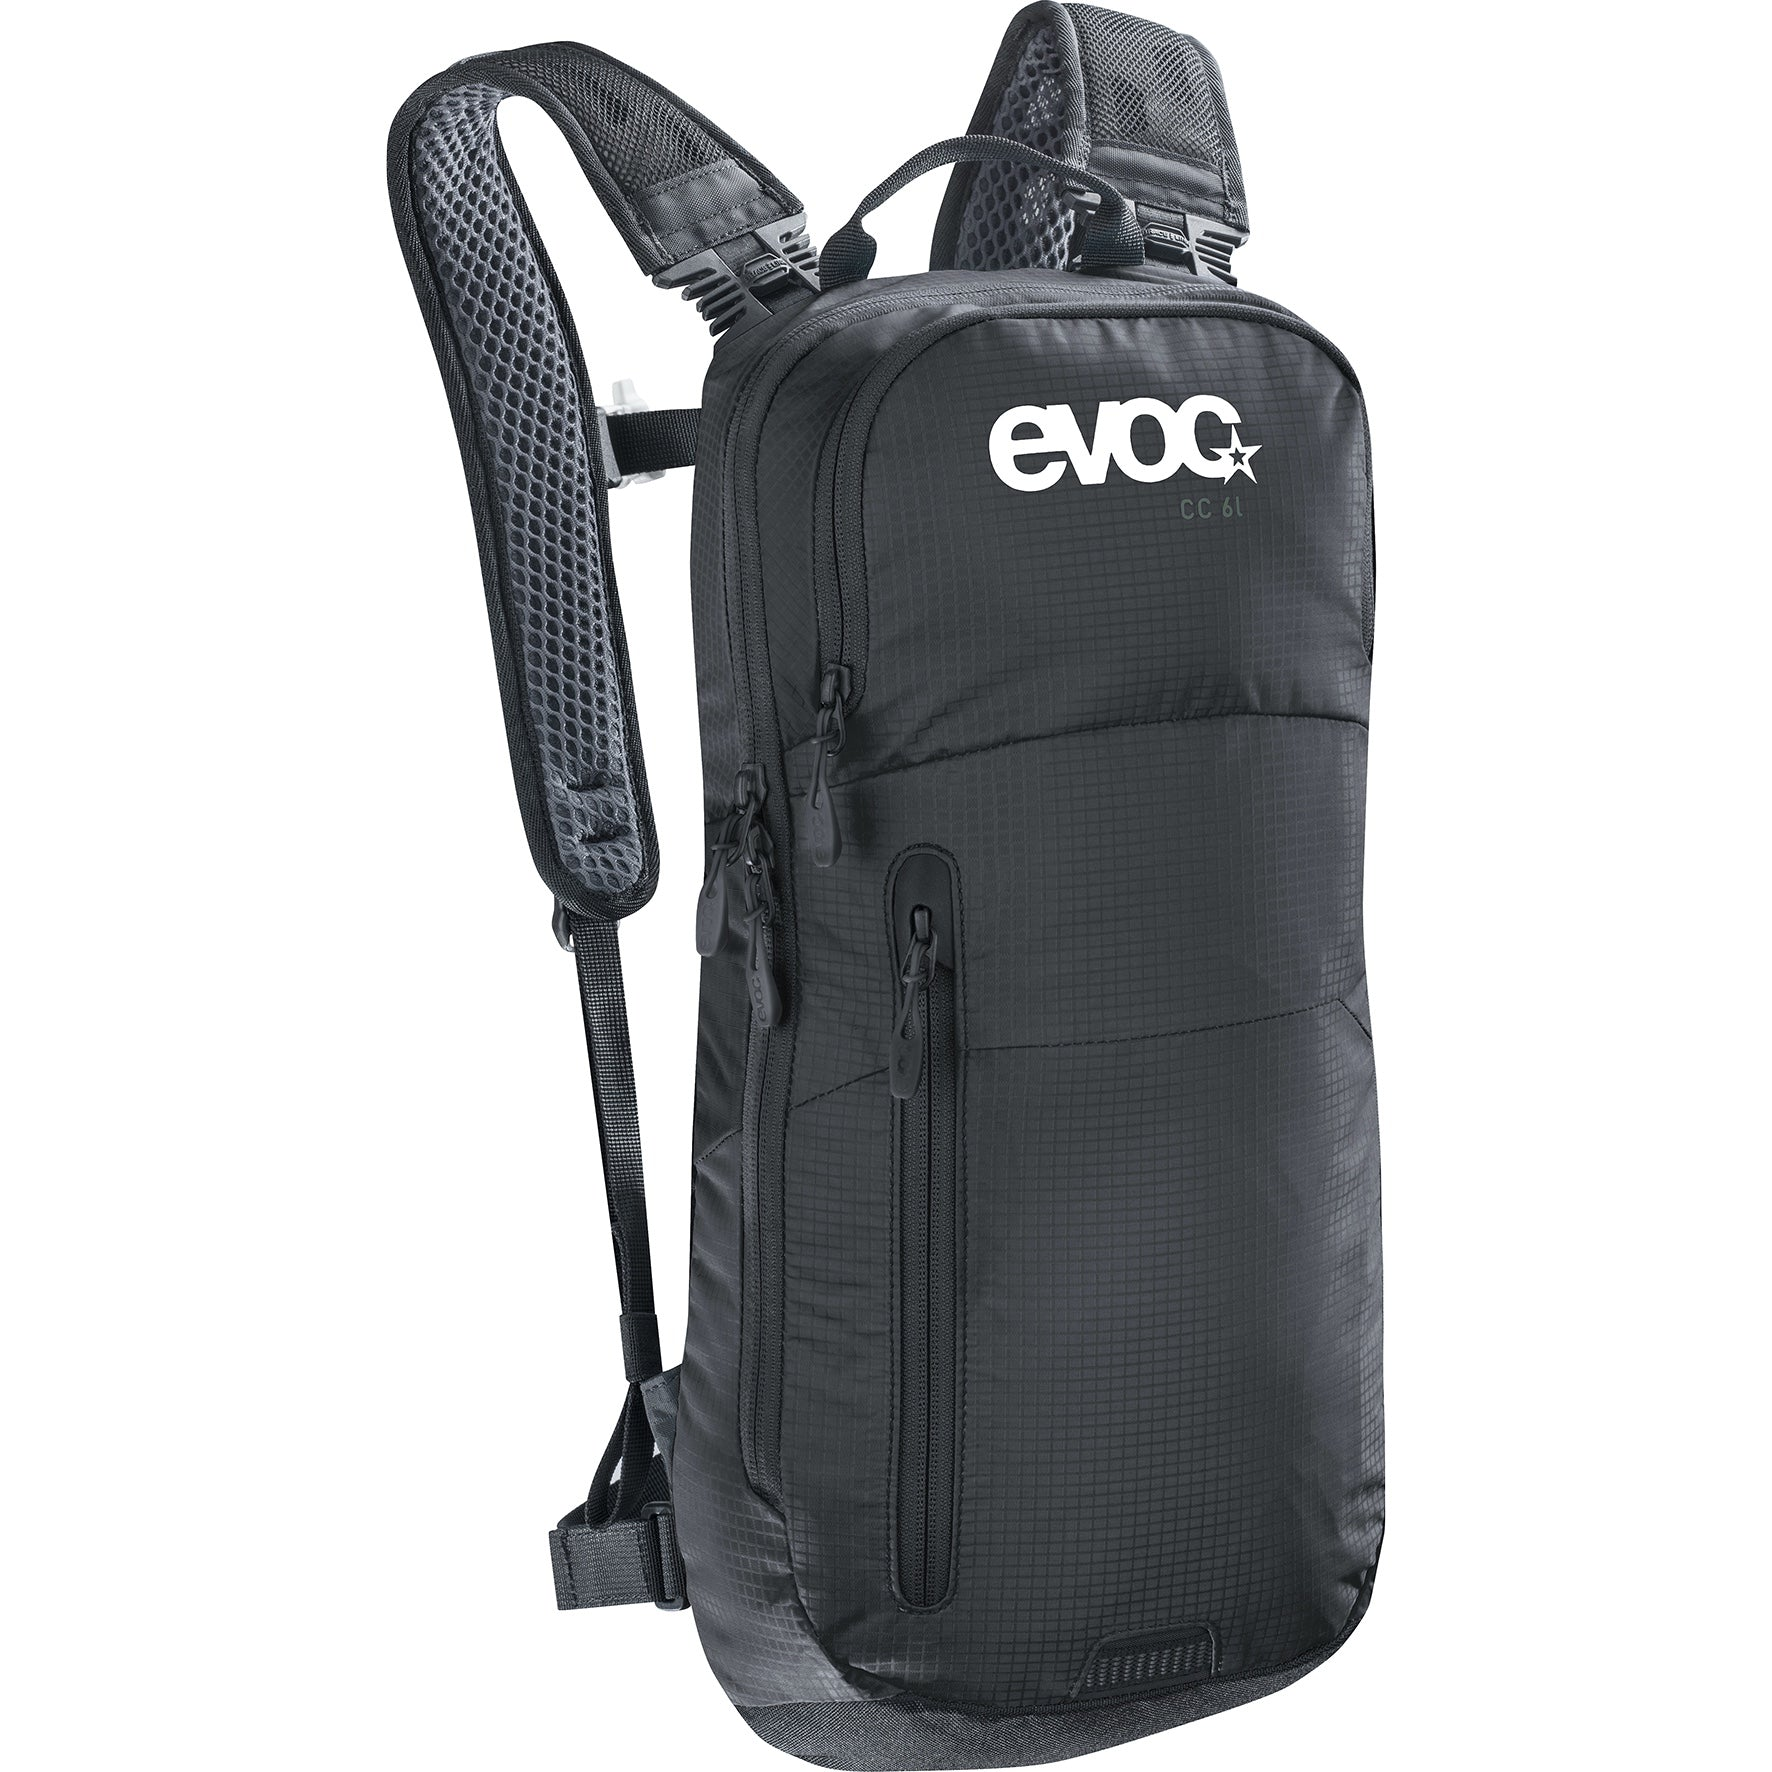 Mochila Evoc Cc 6l+2l Bladder Black